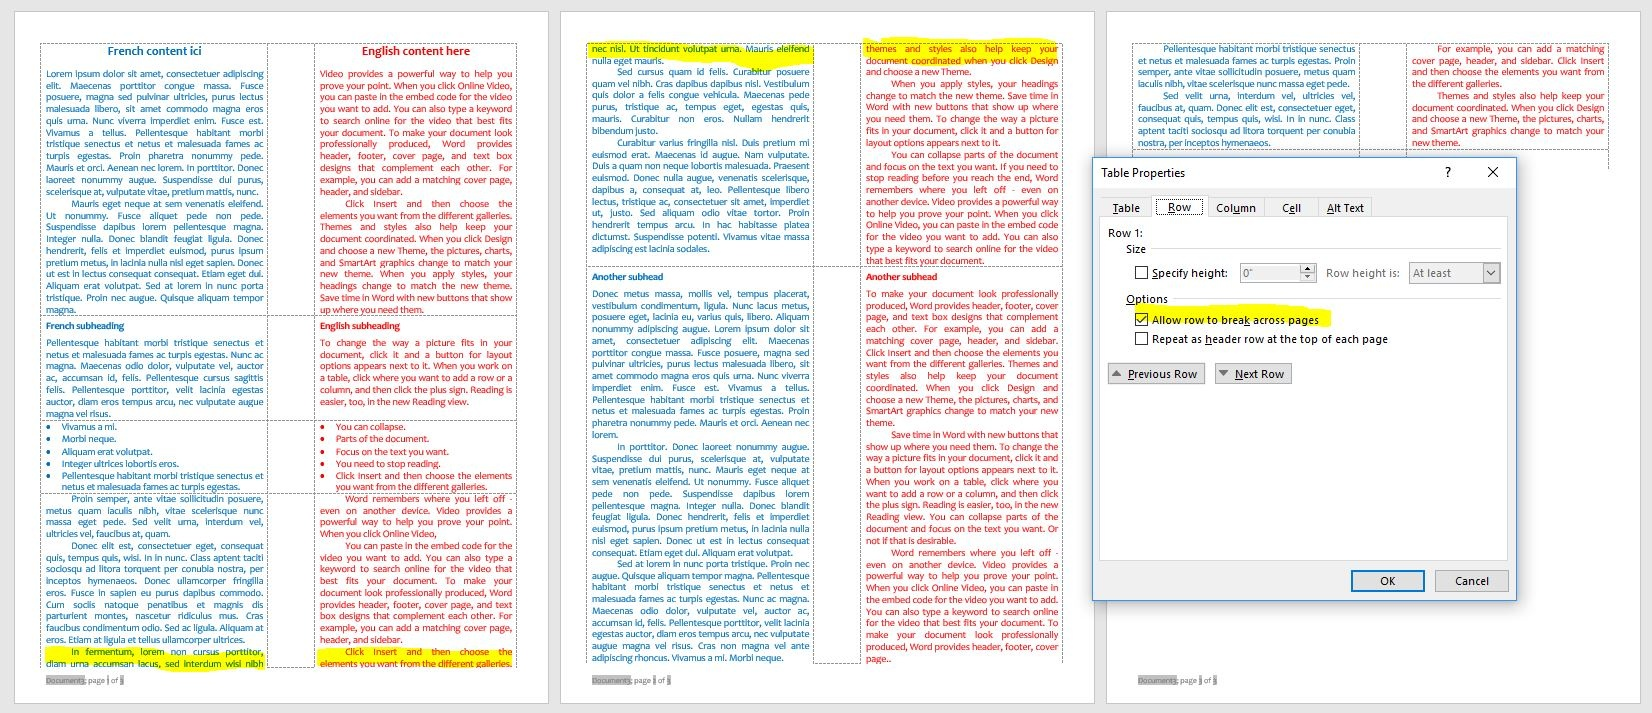 How to create a bilingual dual column document in Word - Quora With 3 Column Word Template